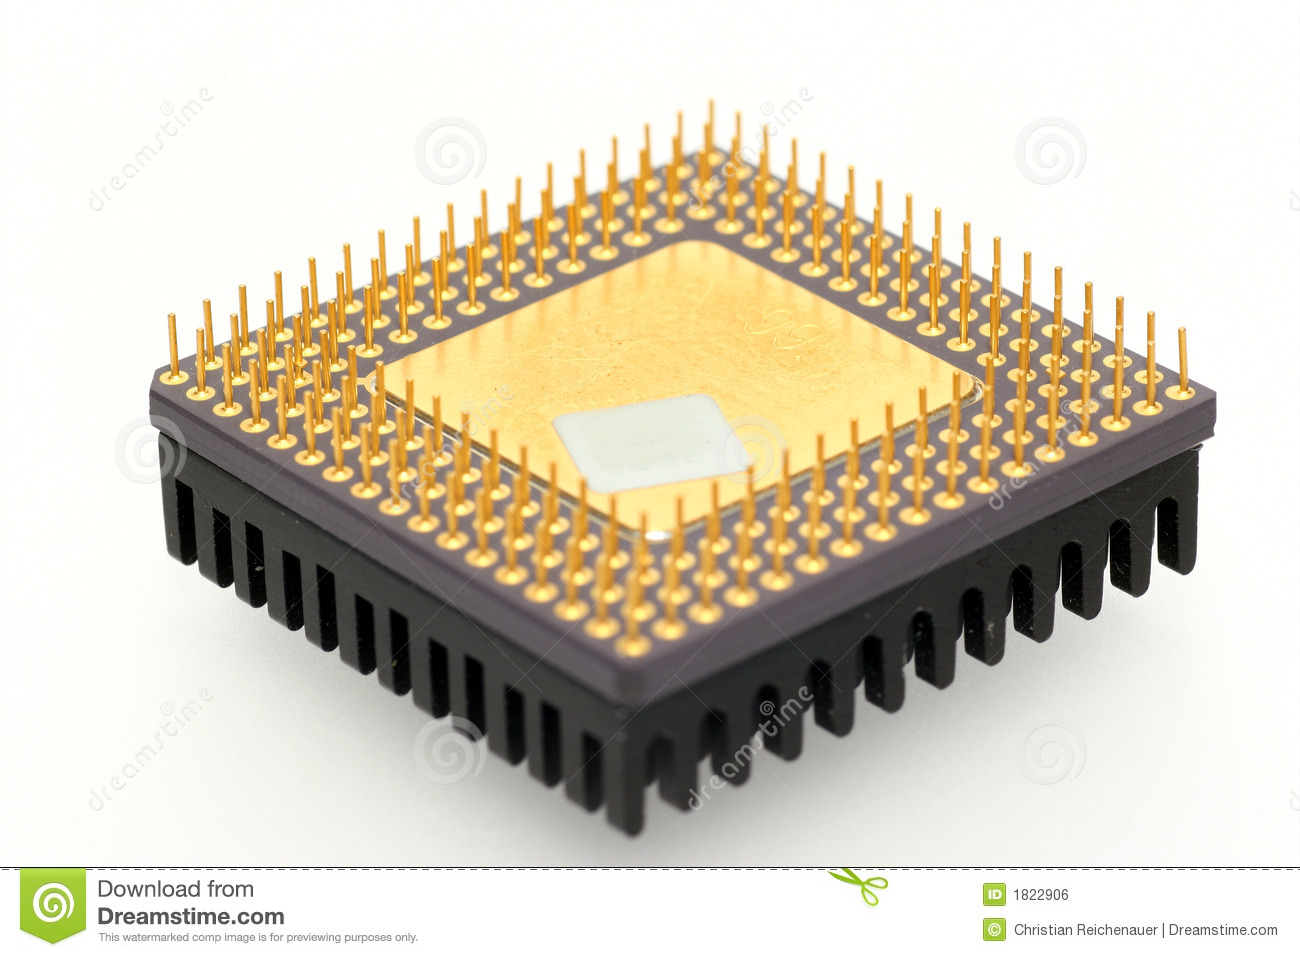 ... of an old CPU with fitted heat sink. Is a Intel Pentium 166 mHz